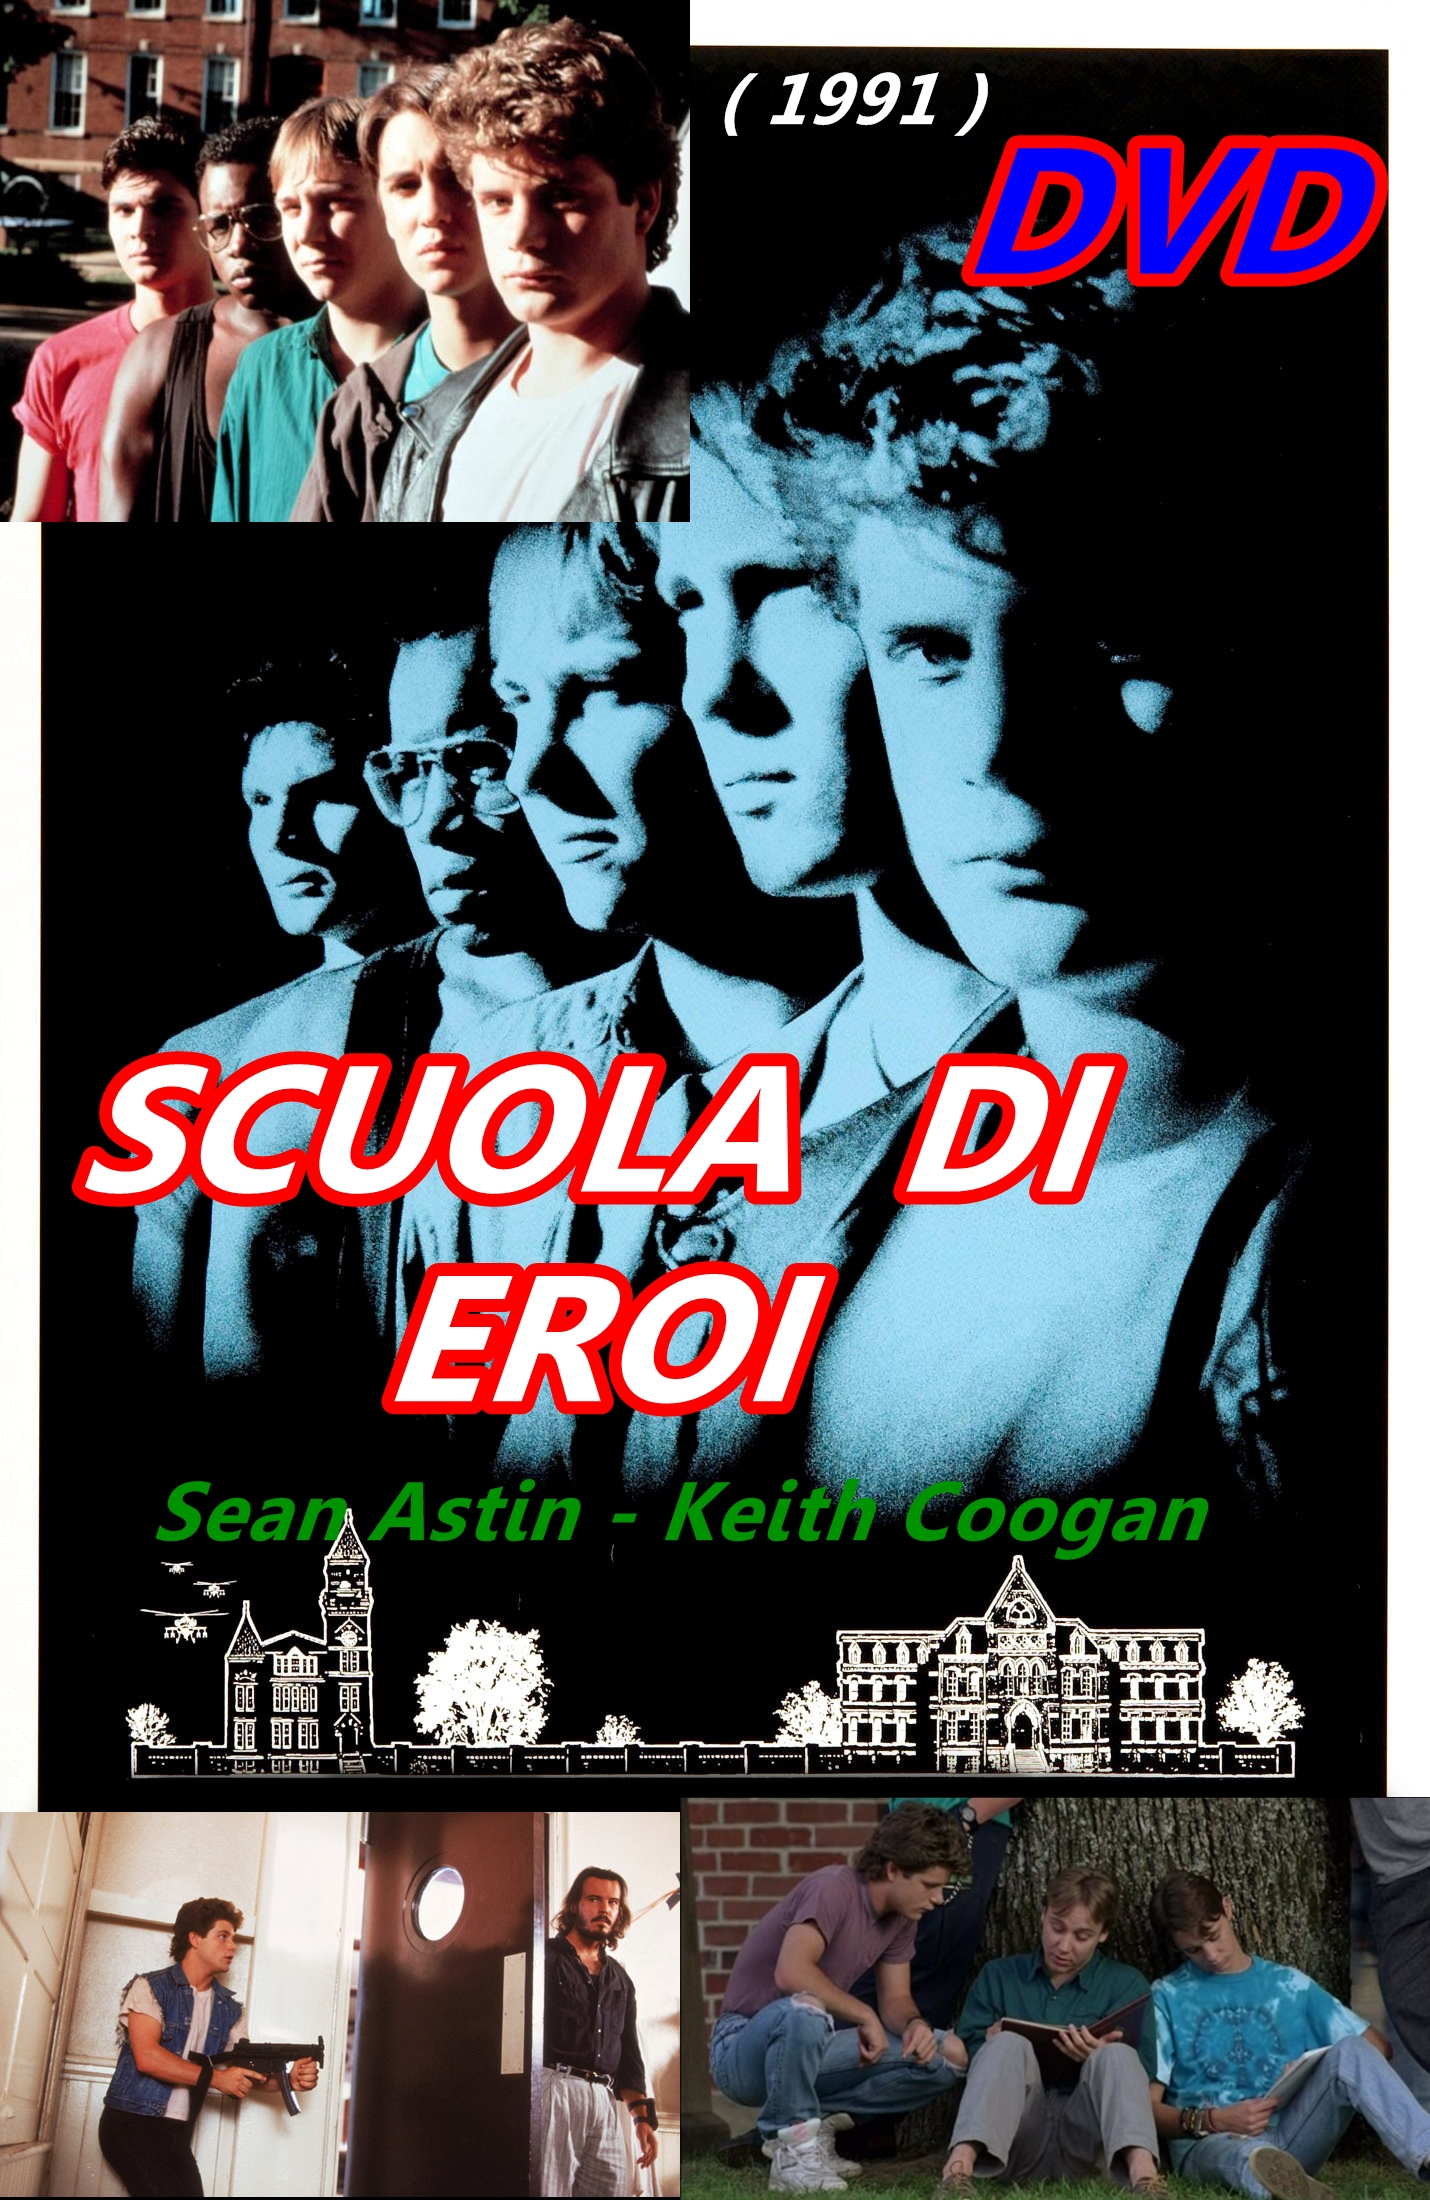 SCUOLA_DI_EROI_DVD_1991_Sean_Astin_Keith_Coogan_Toy_Soldiers